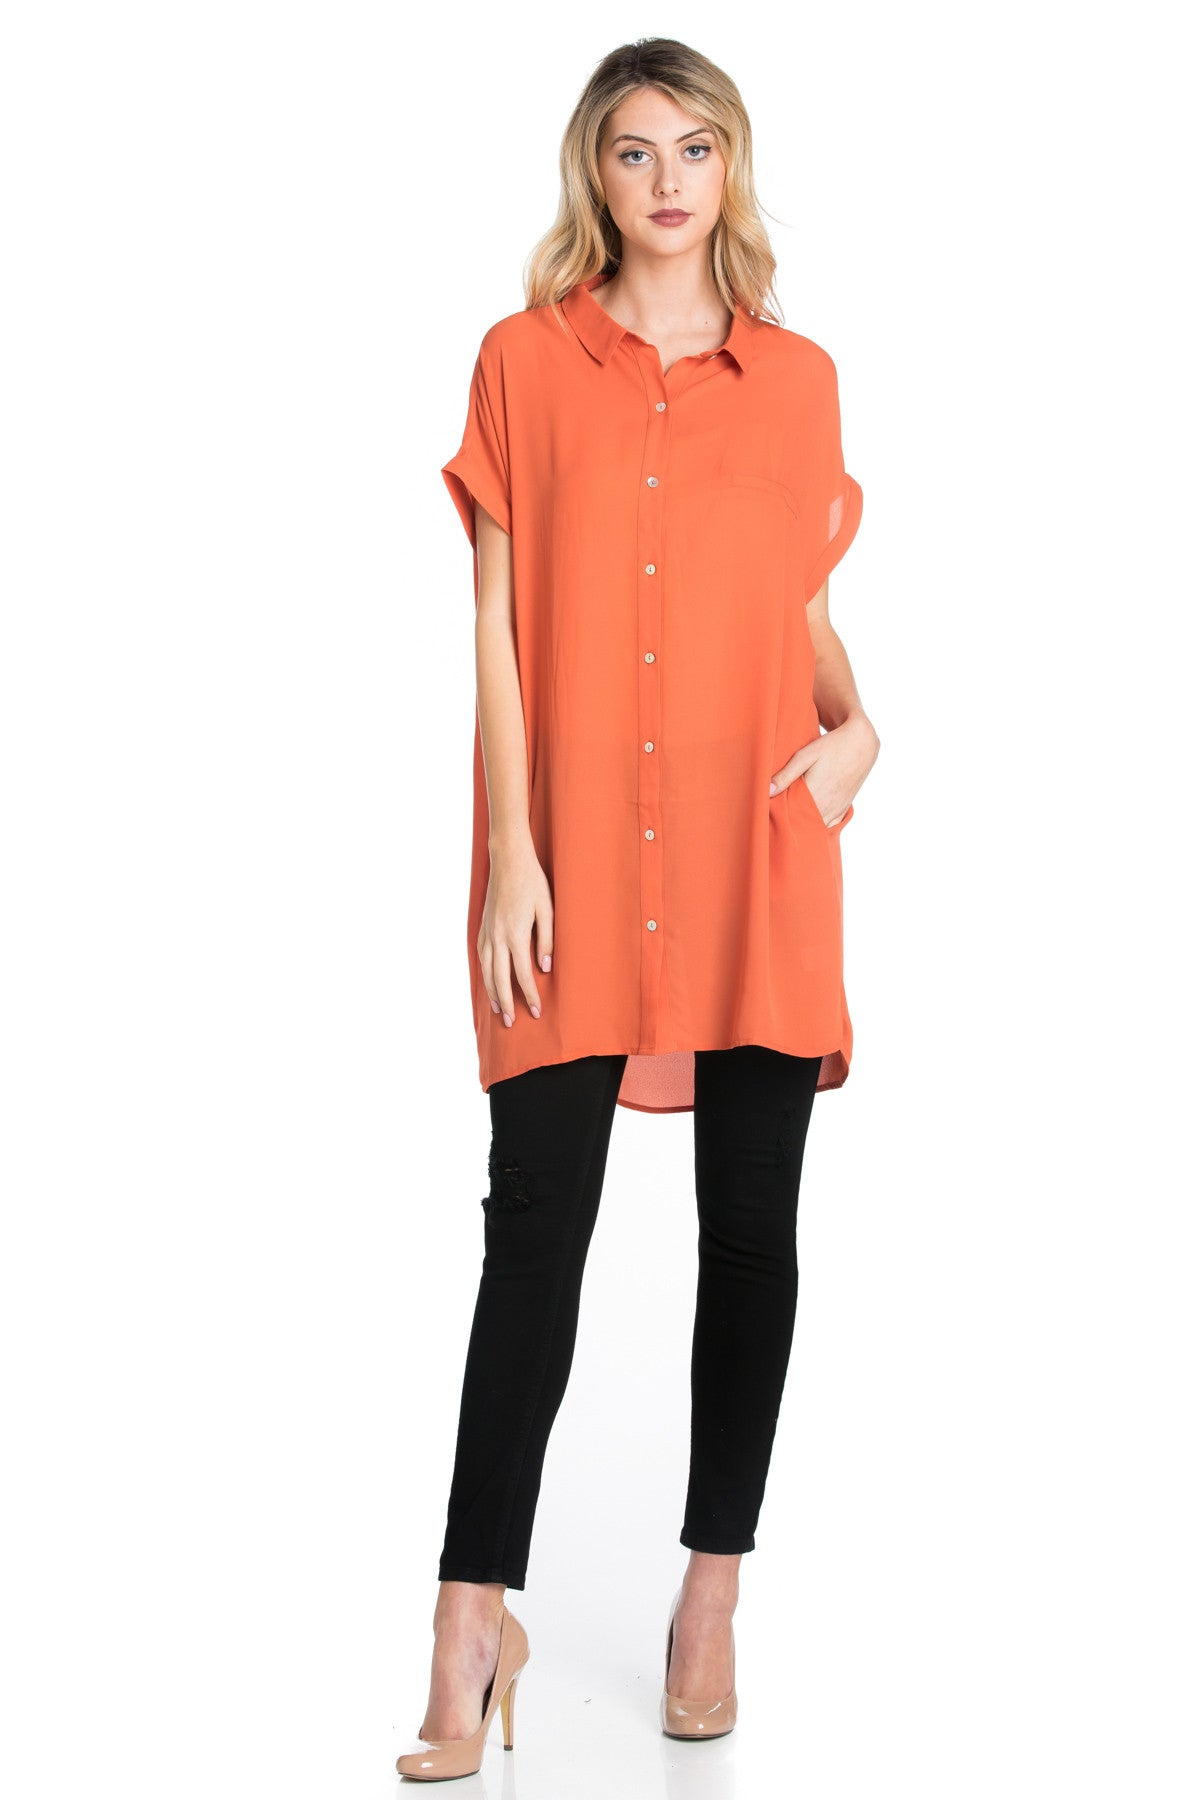 Short Sleeve Longline Button Down Chiffon Top in Sun Coral - Tops - My Yuccie - 1